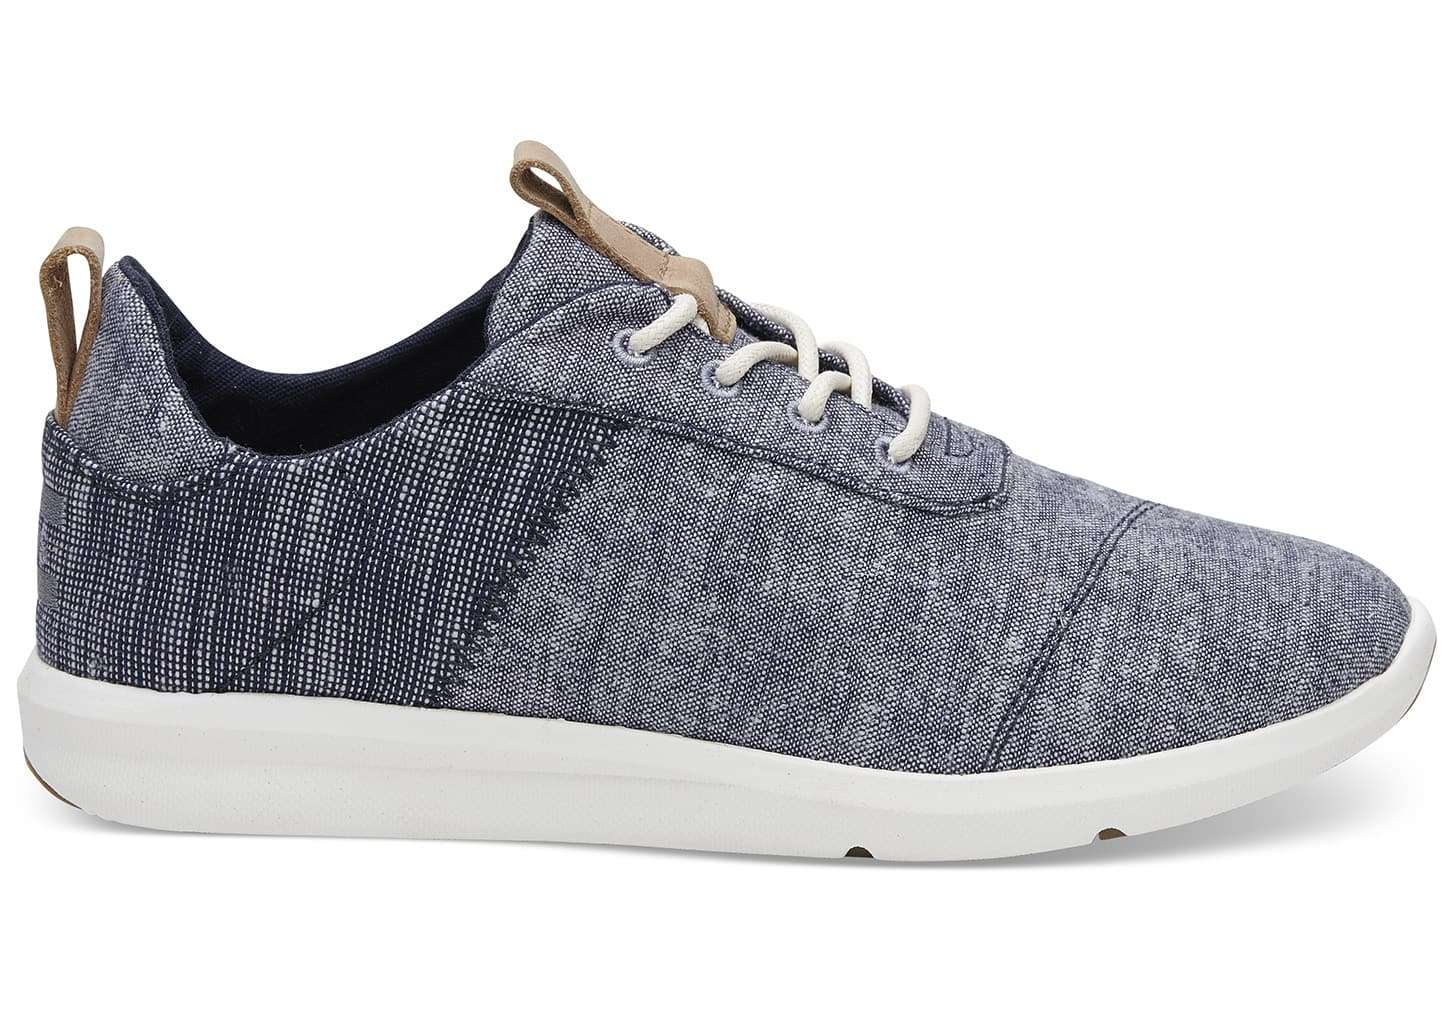 d2ee686609bad TOMS Womens Navy Chambray Cabrillo Basketweave Sneaker Canvas 10011748